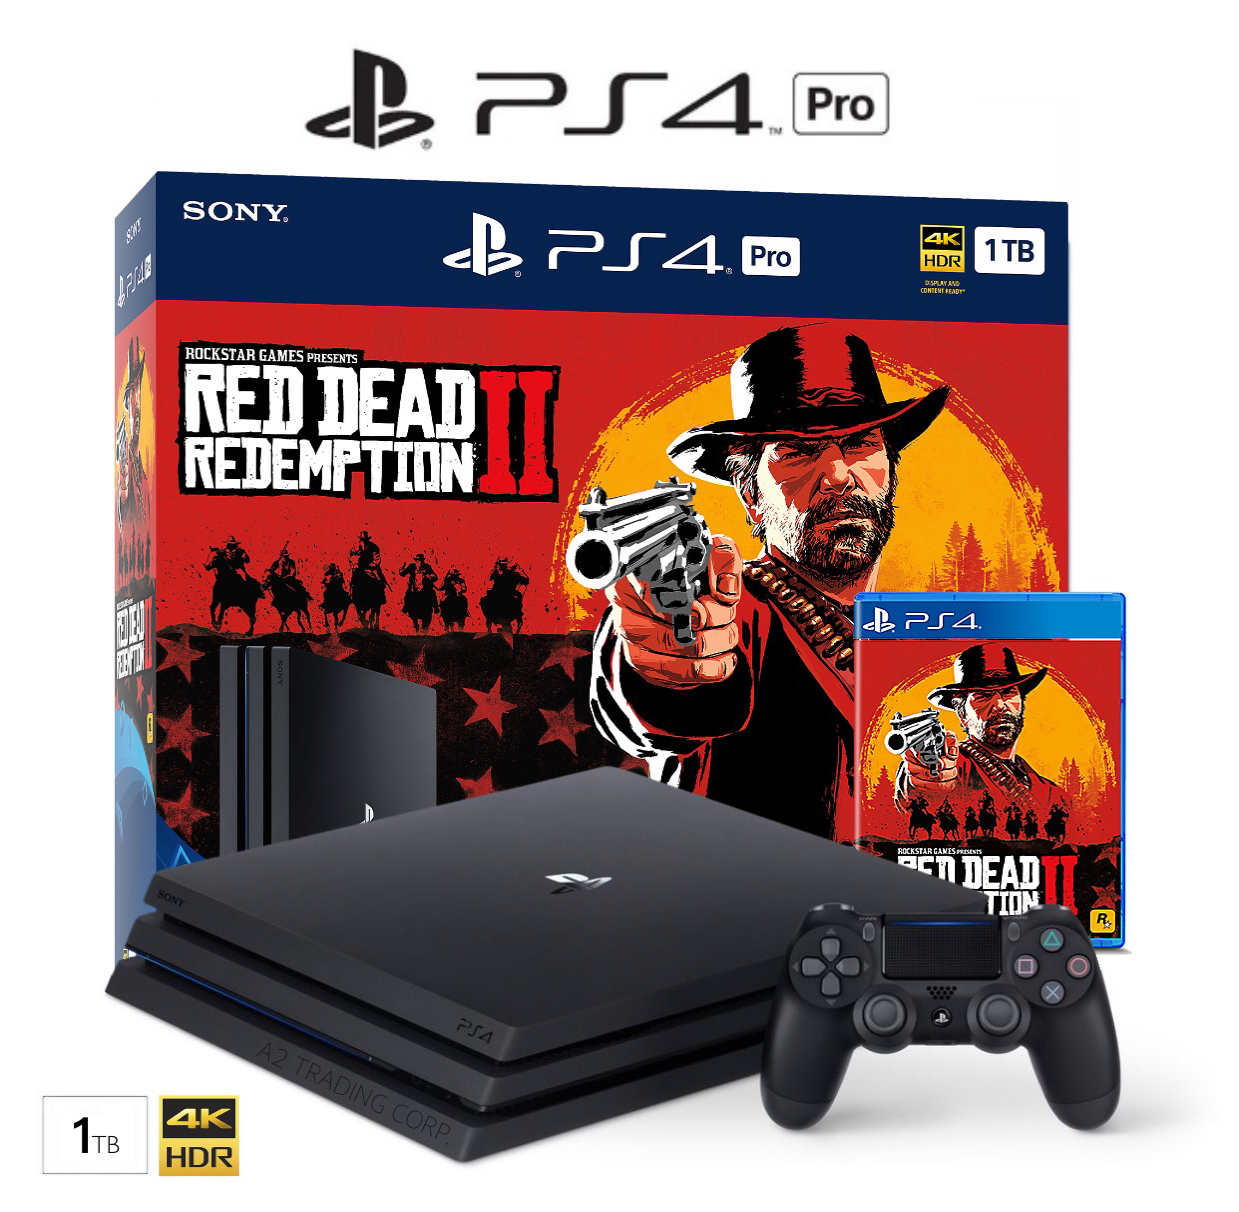 Sony PS4 PRO 1TB - Red Dead Redemption 2 Bundle